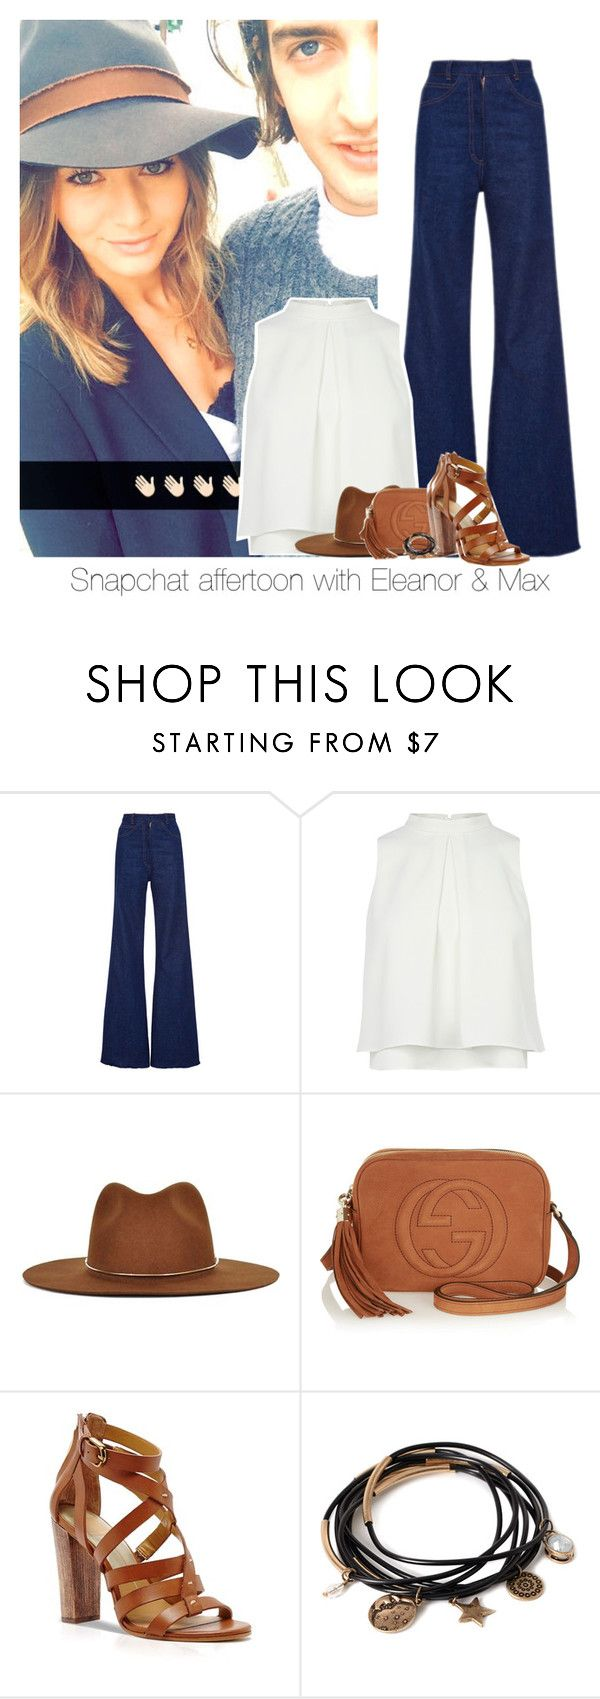 """""""Snapchat affertoon with Eleanor & Max"""" by reasongirl ❤ liked on Polyvore featuring Janessa Leone, Gucci, Dolce Vita and Forever 21"""